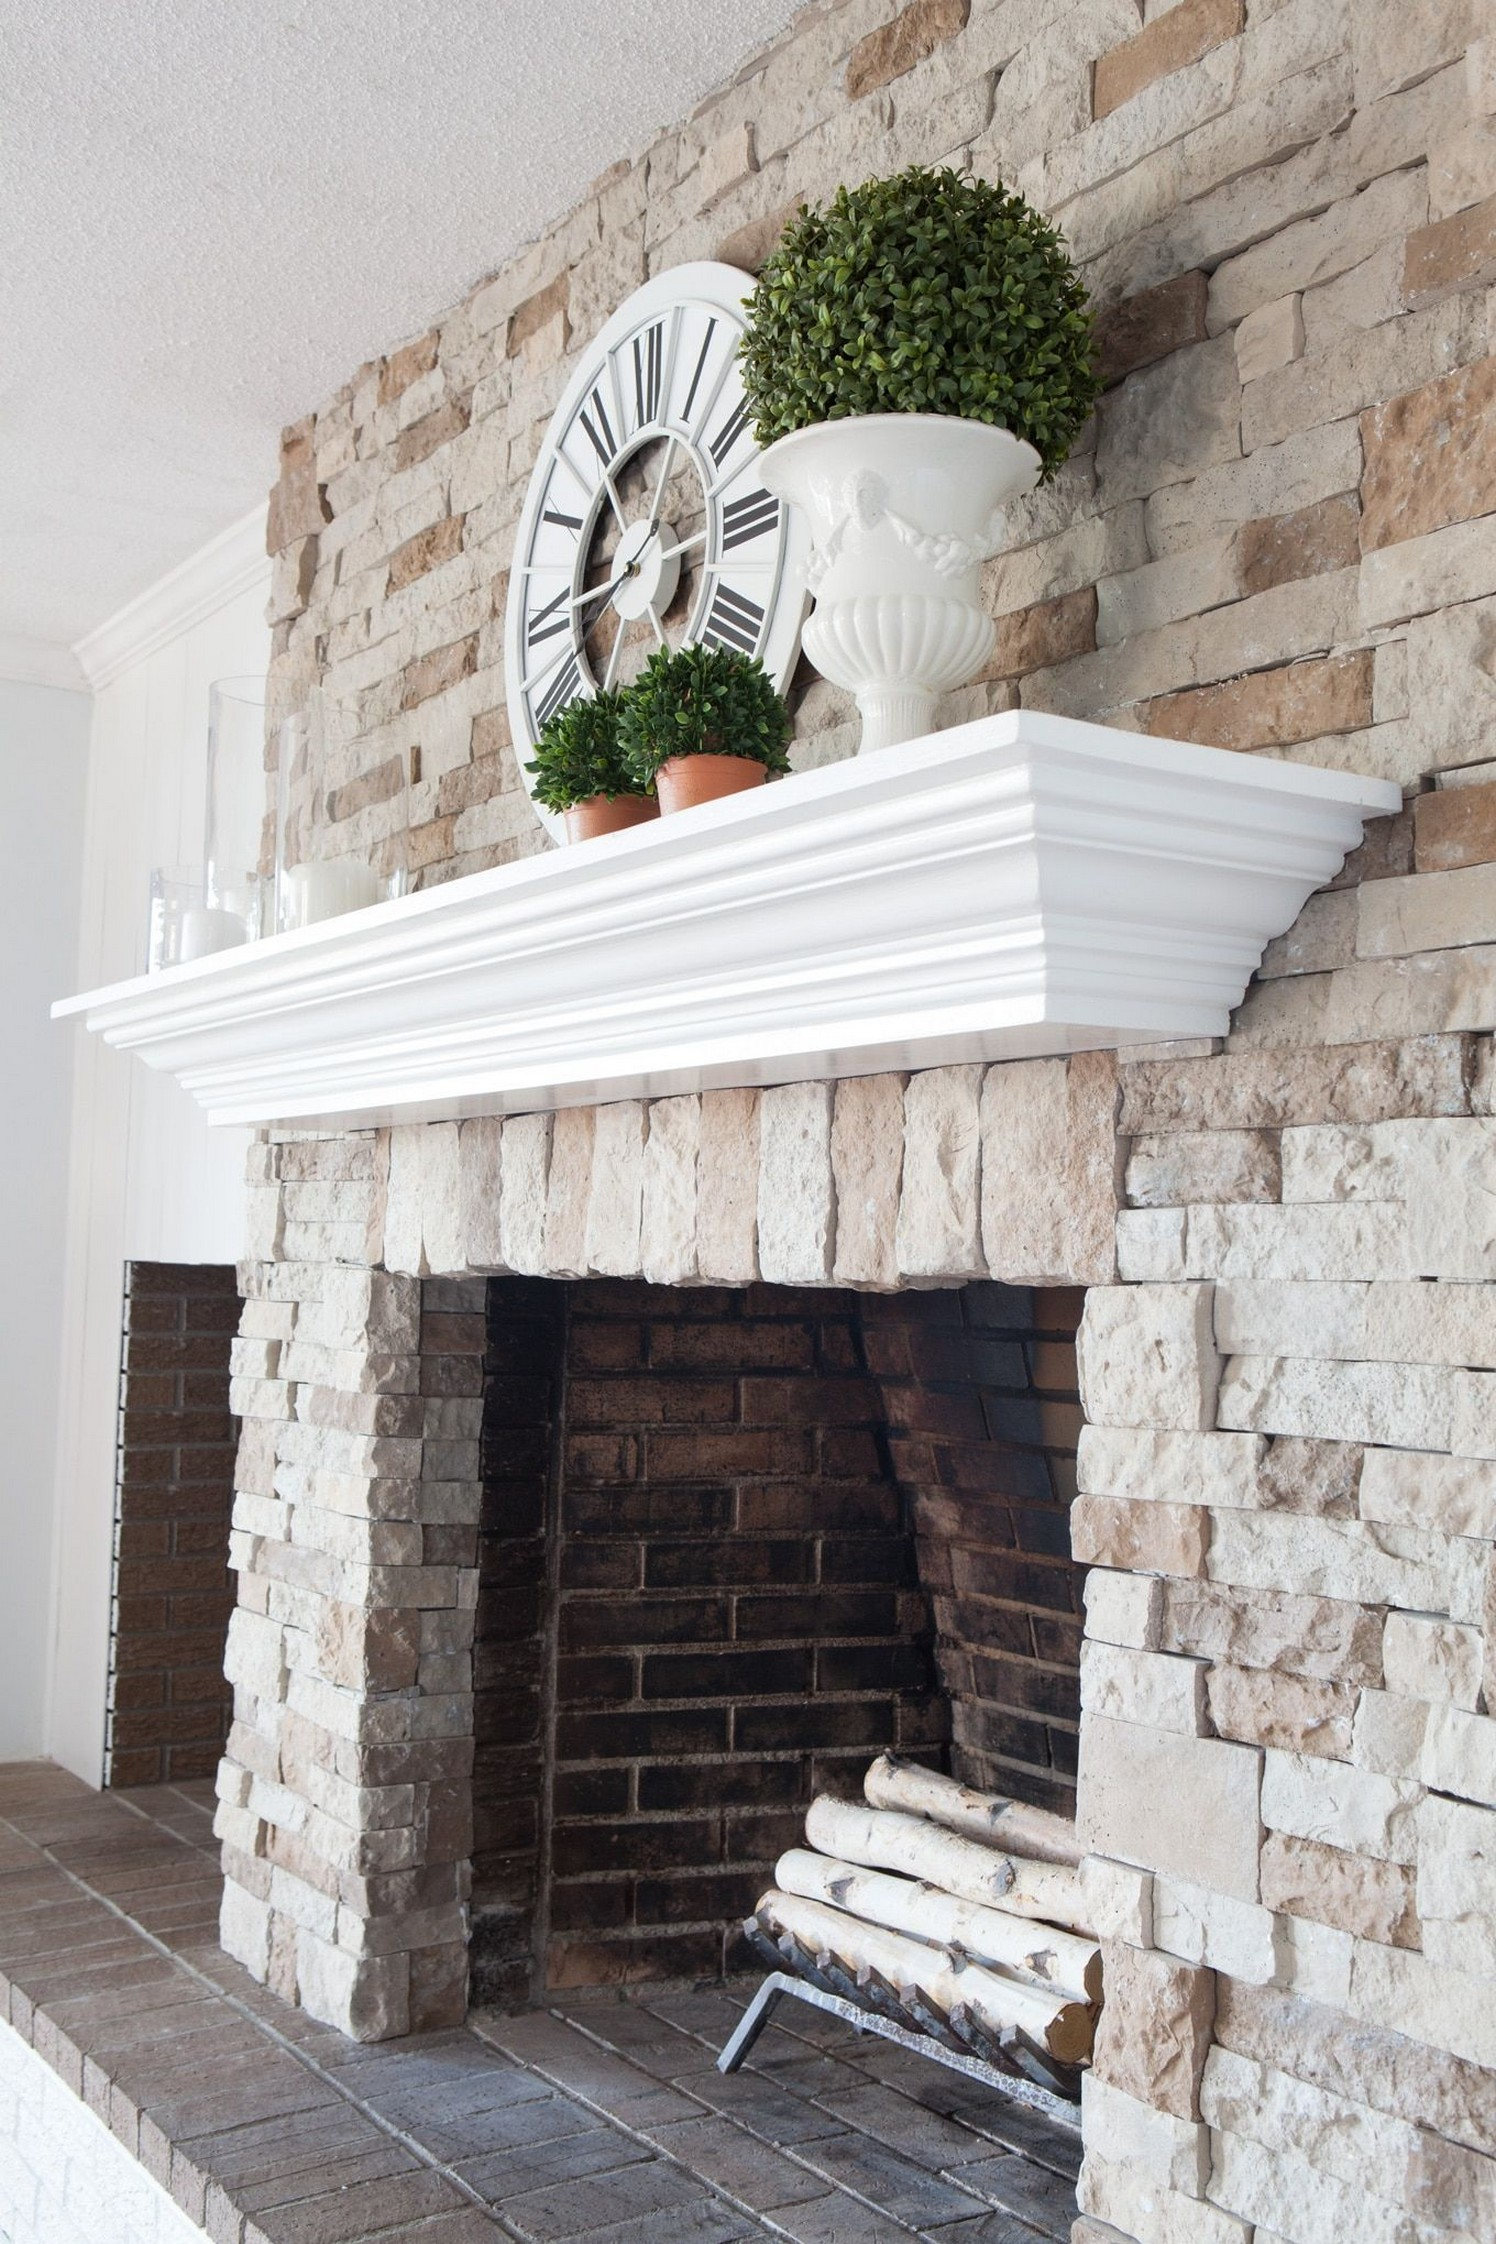 76 Stone Fireplaces The Hearth Is The Heart of The Home 33